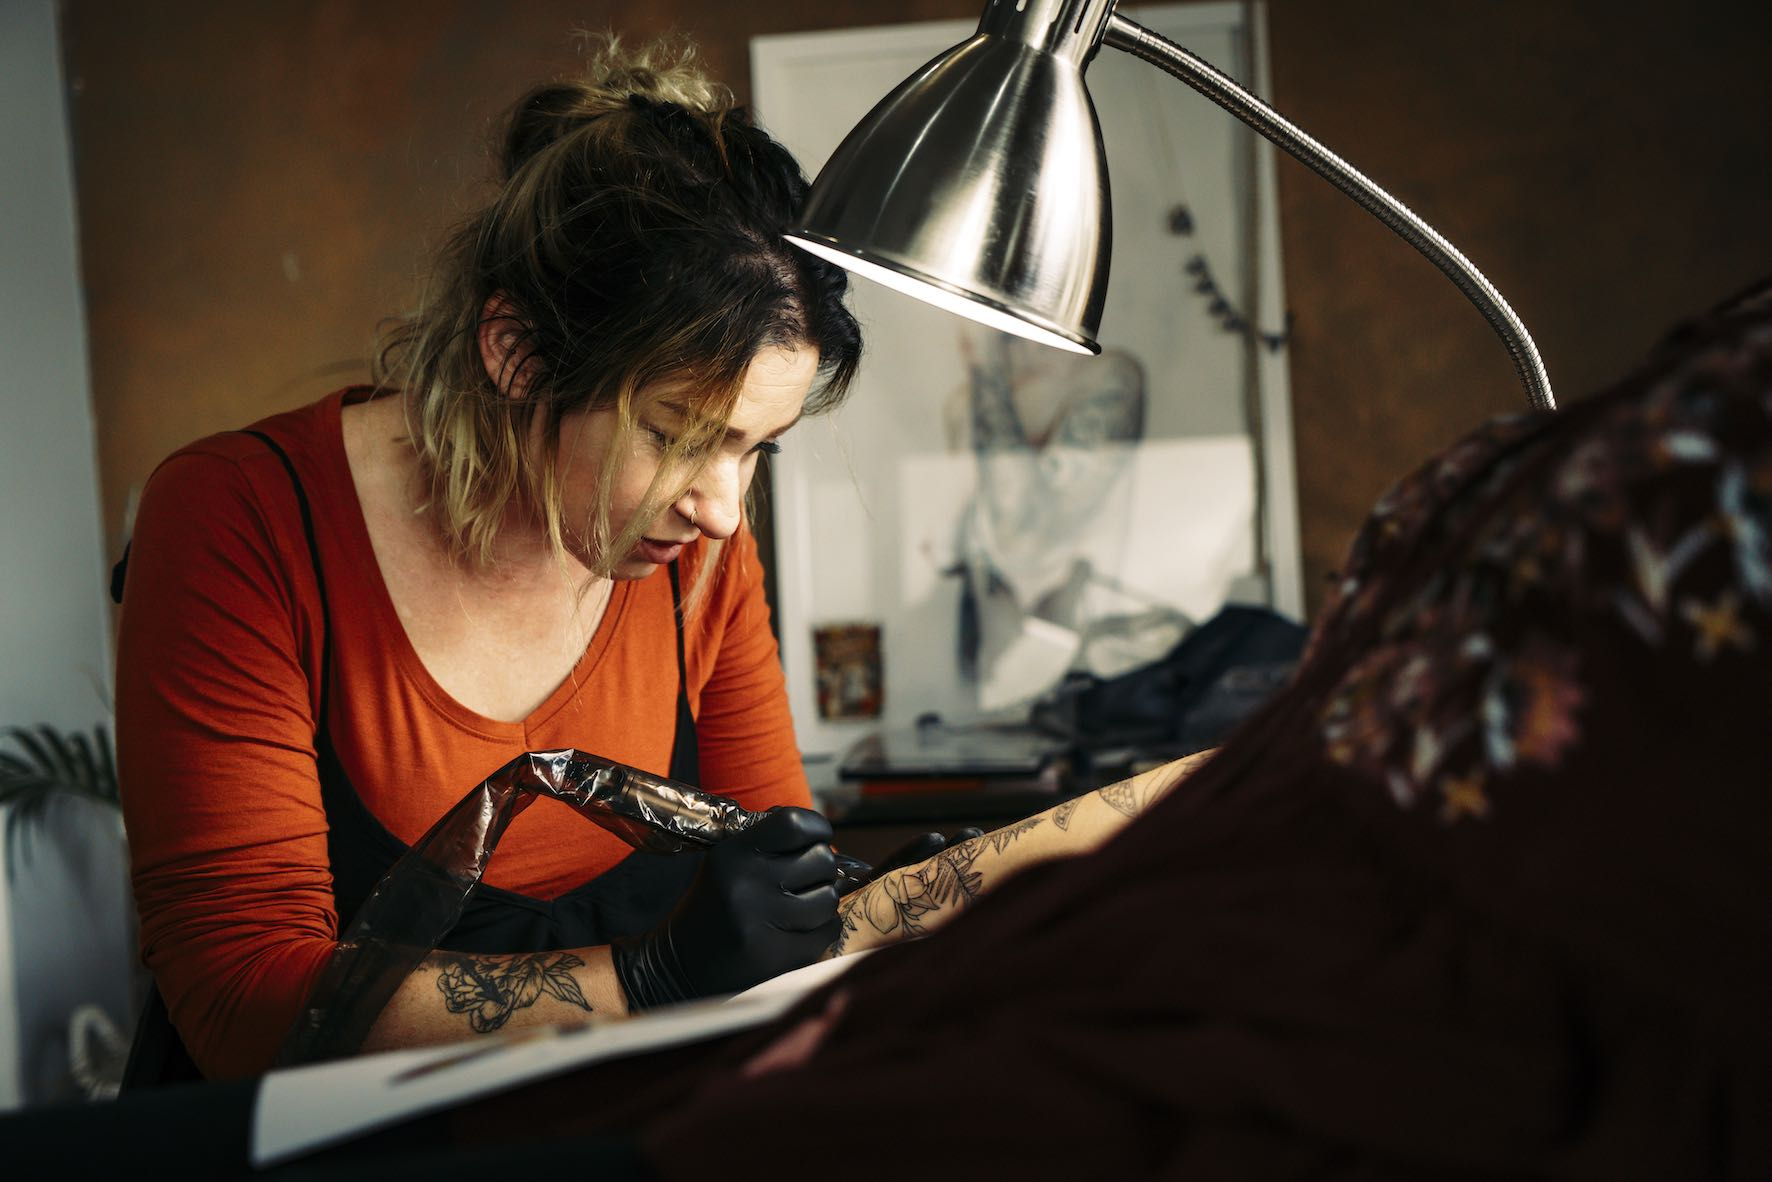 Lauren Peachfish talks tattoos and the tattoo industry